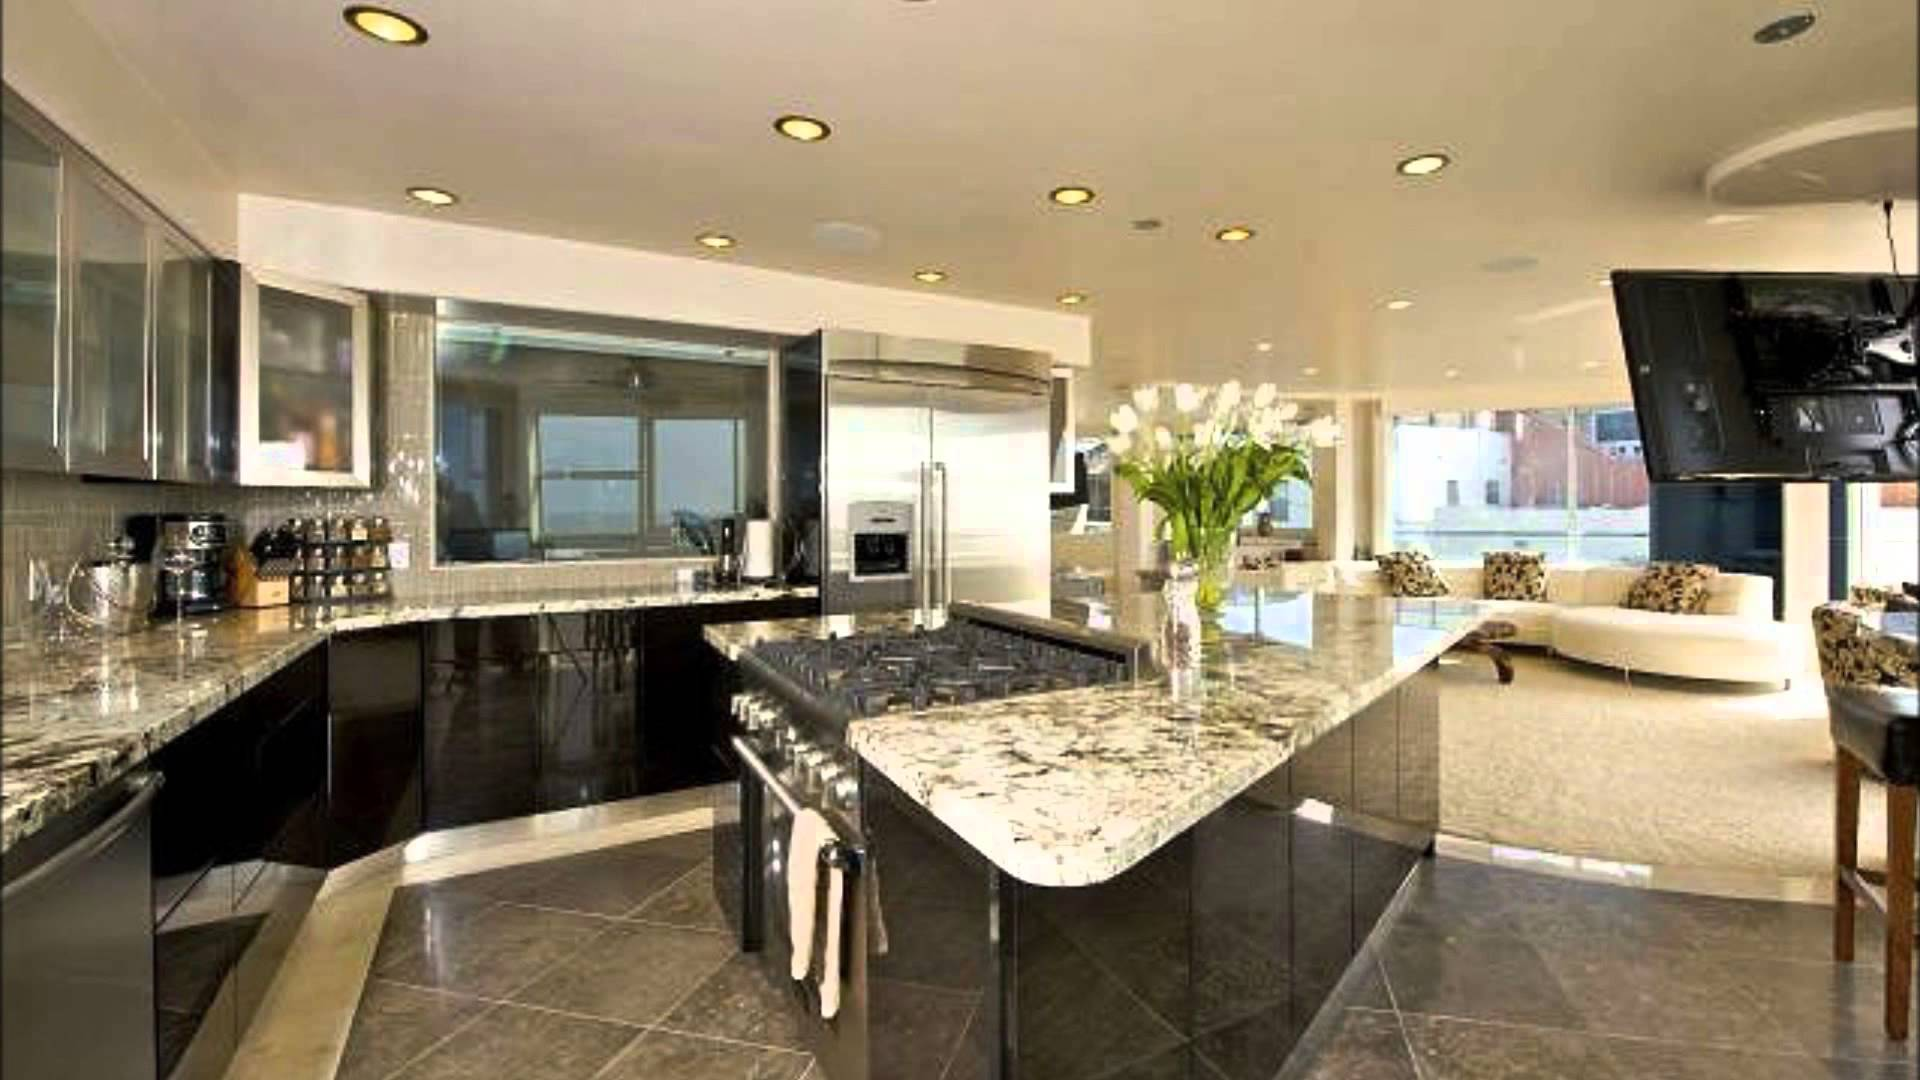 Design your own kitchen ideas with images for Kitchen design and layout ideas